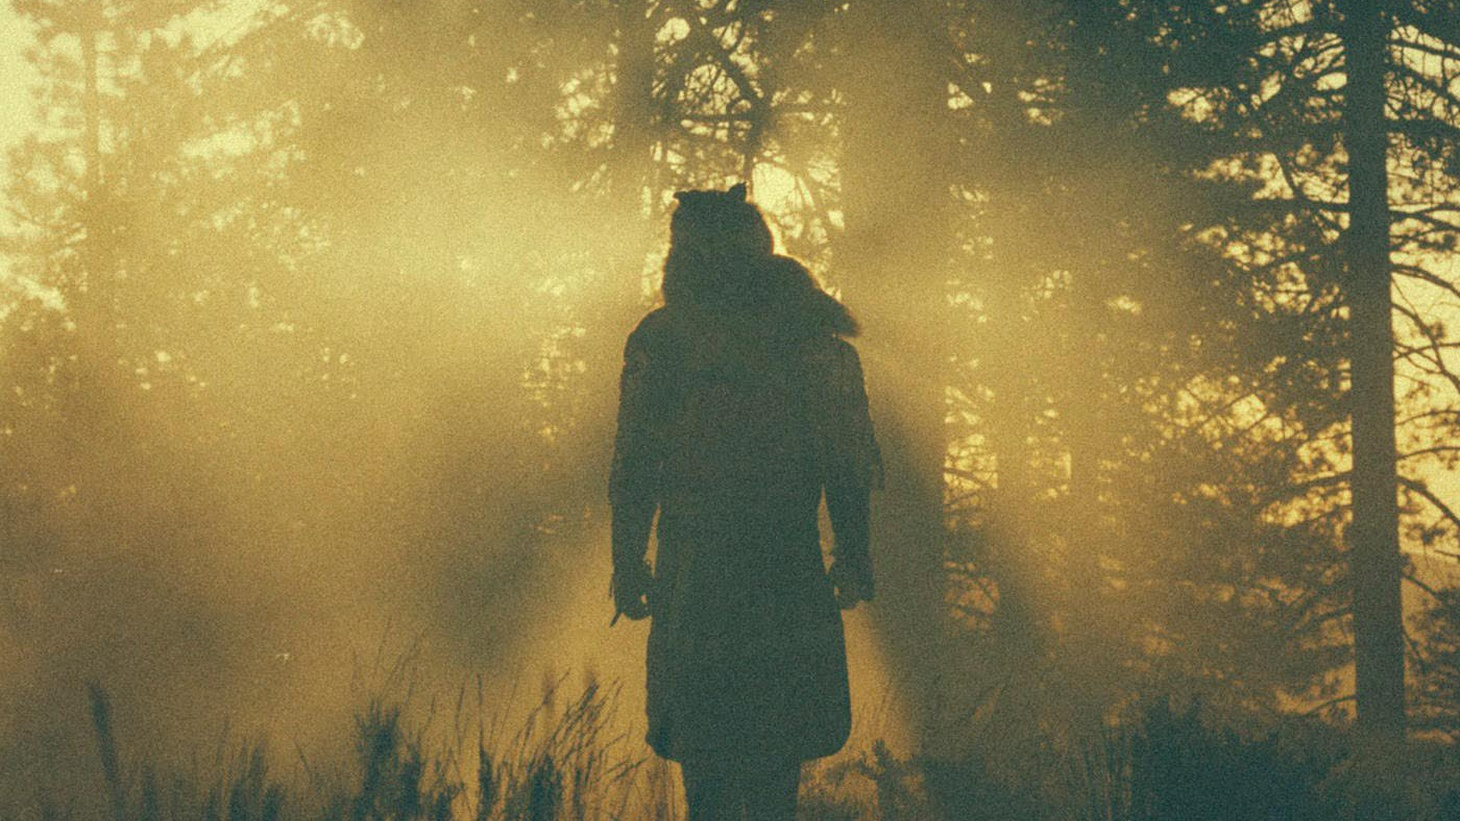 His first solo material in a couple of years, master bassist and singer/songwriter Thundercat unleashes the six-song EP,Beyond Where the Giants Roam.